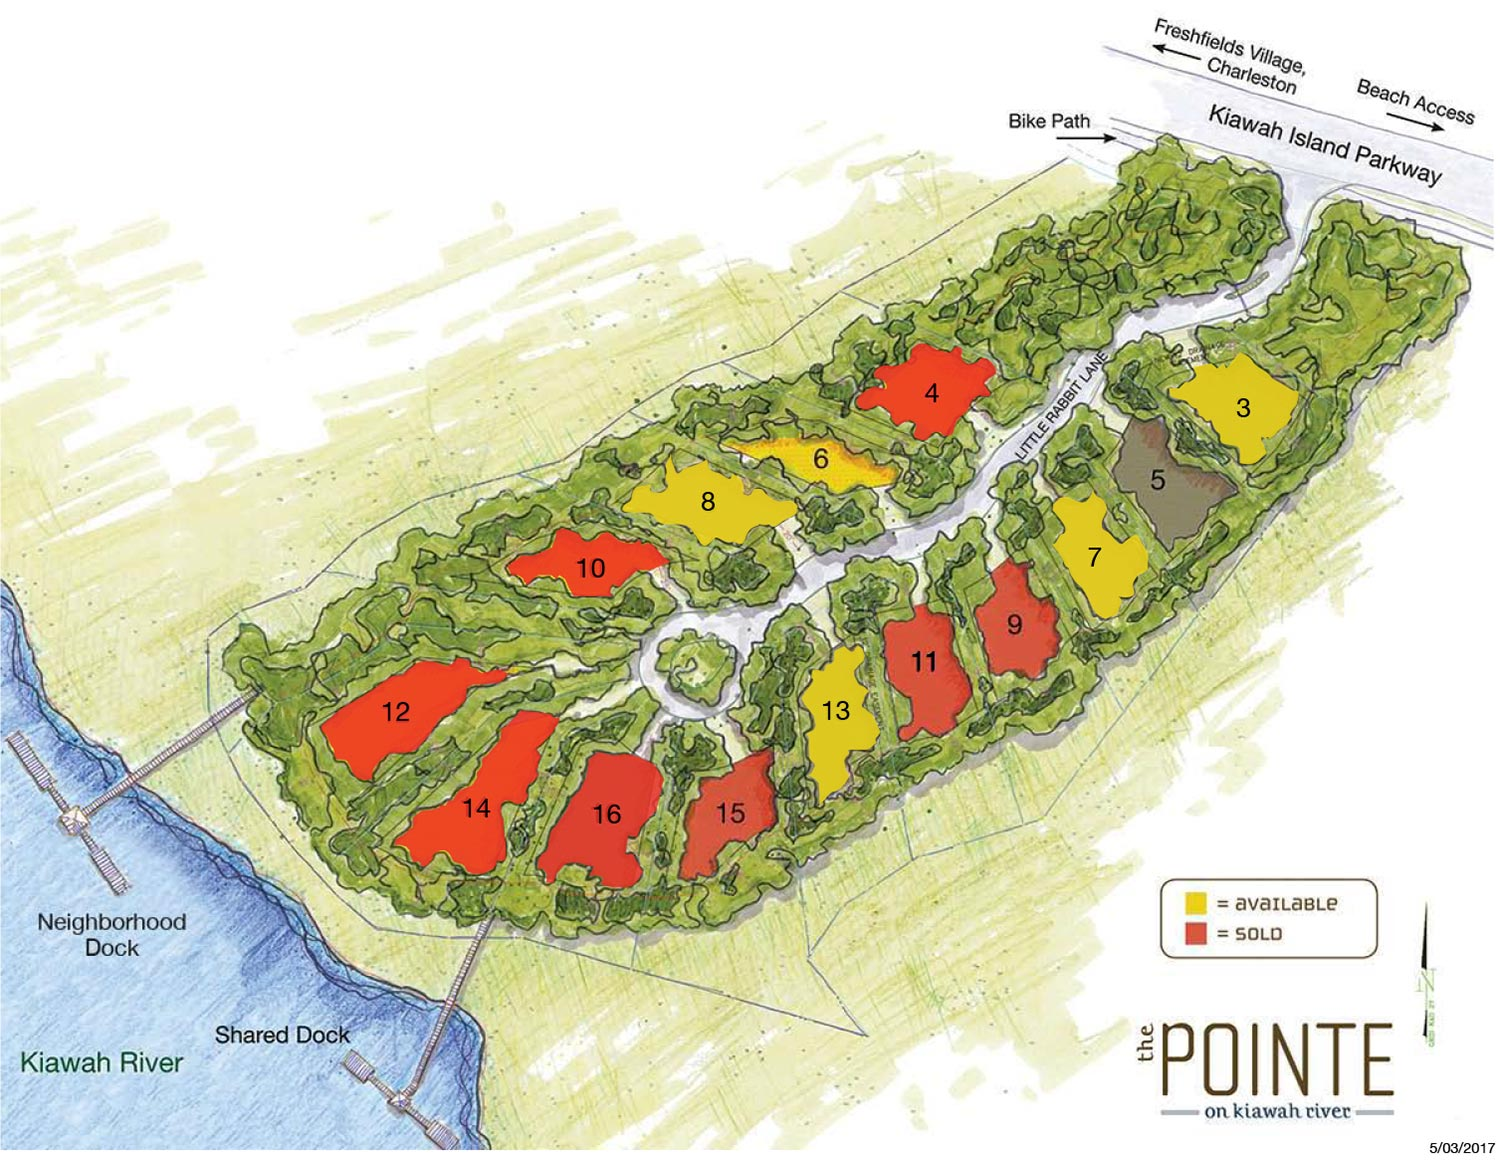 The Pointe site plan